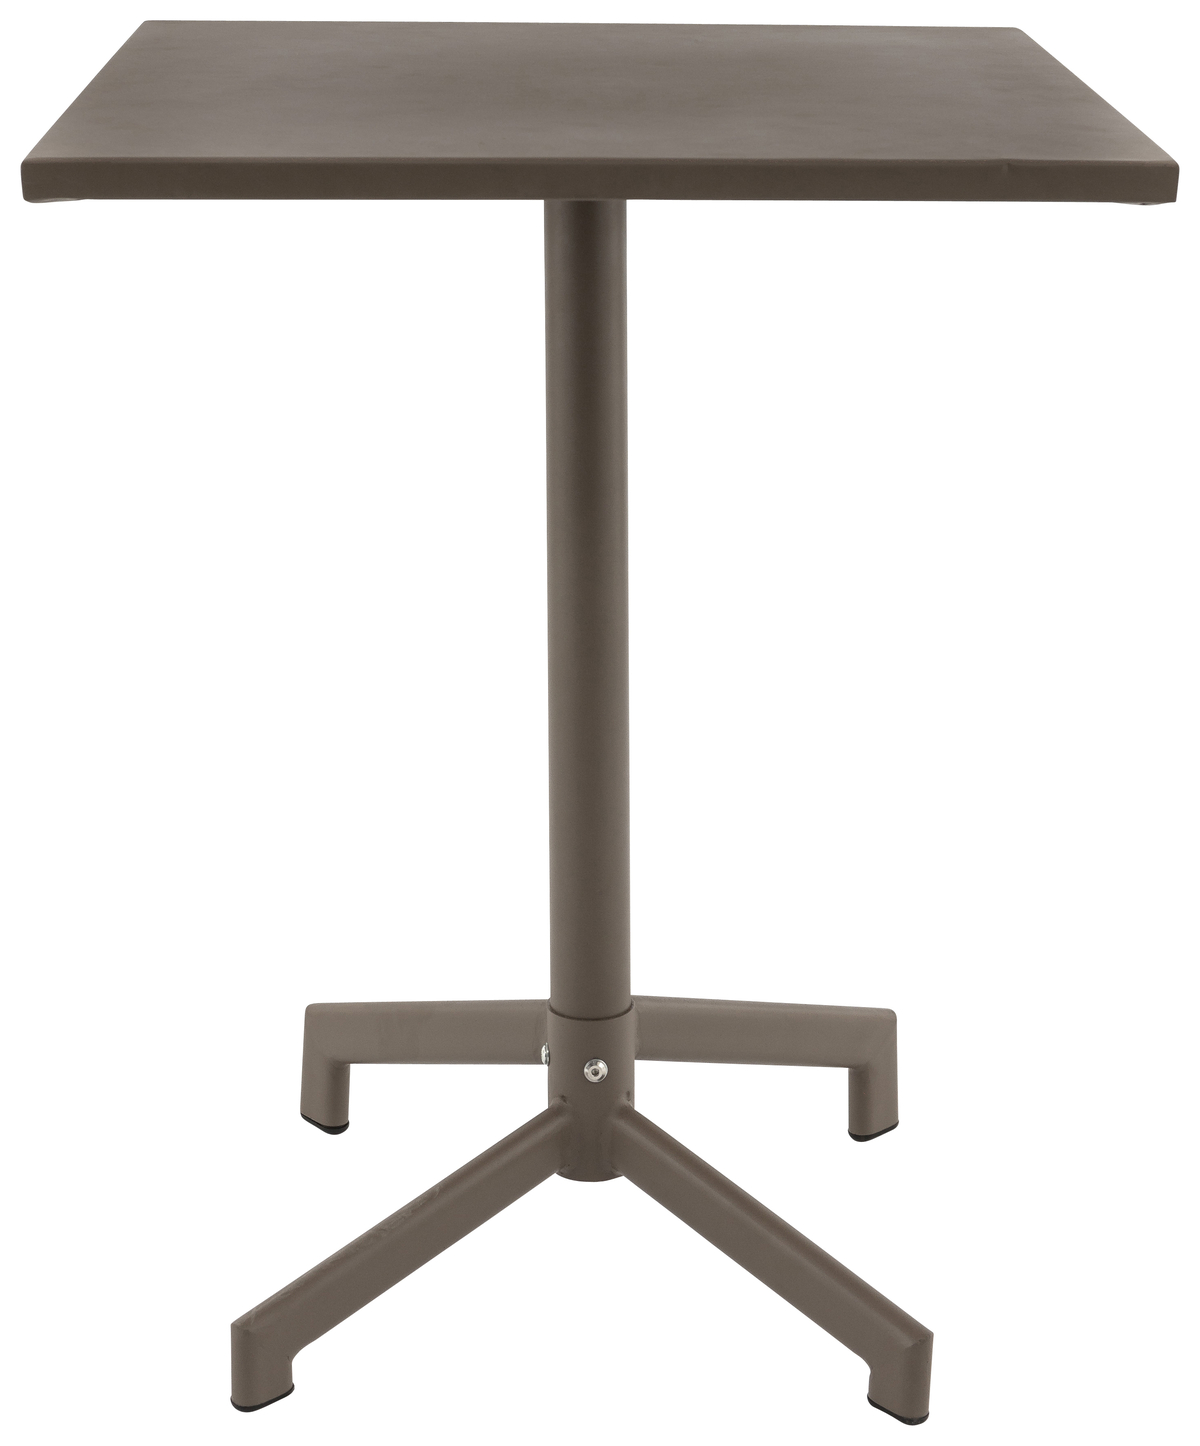 Table taupe 60x60 cm Pigalle